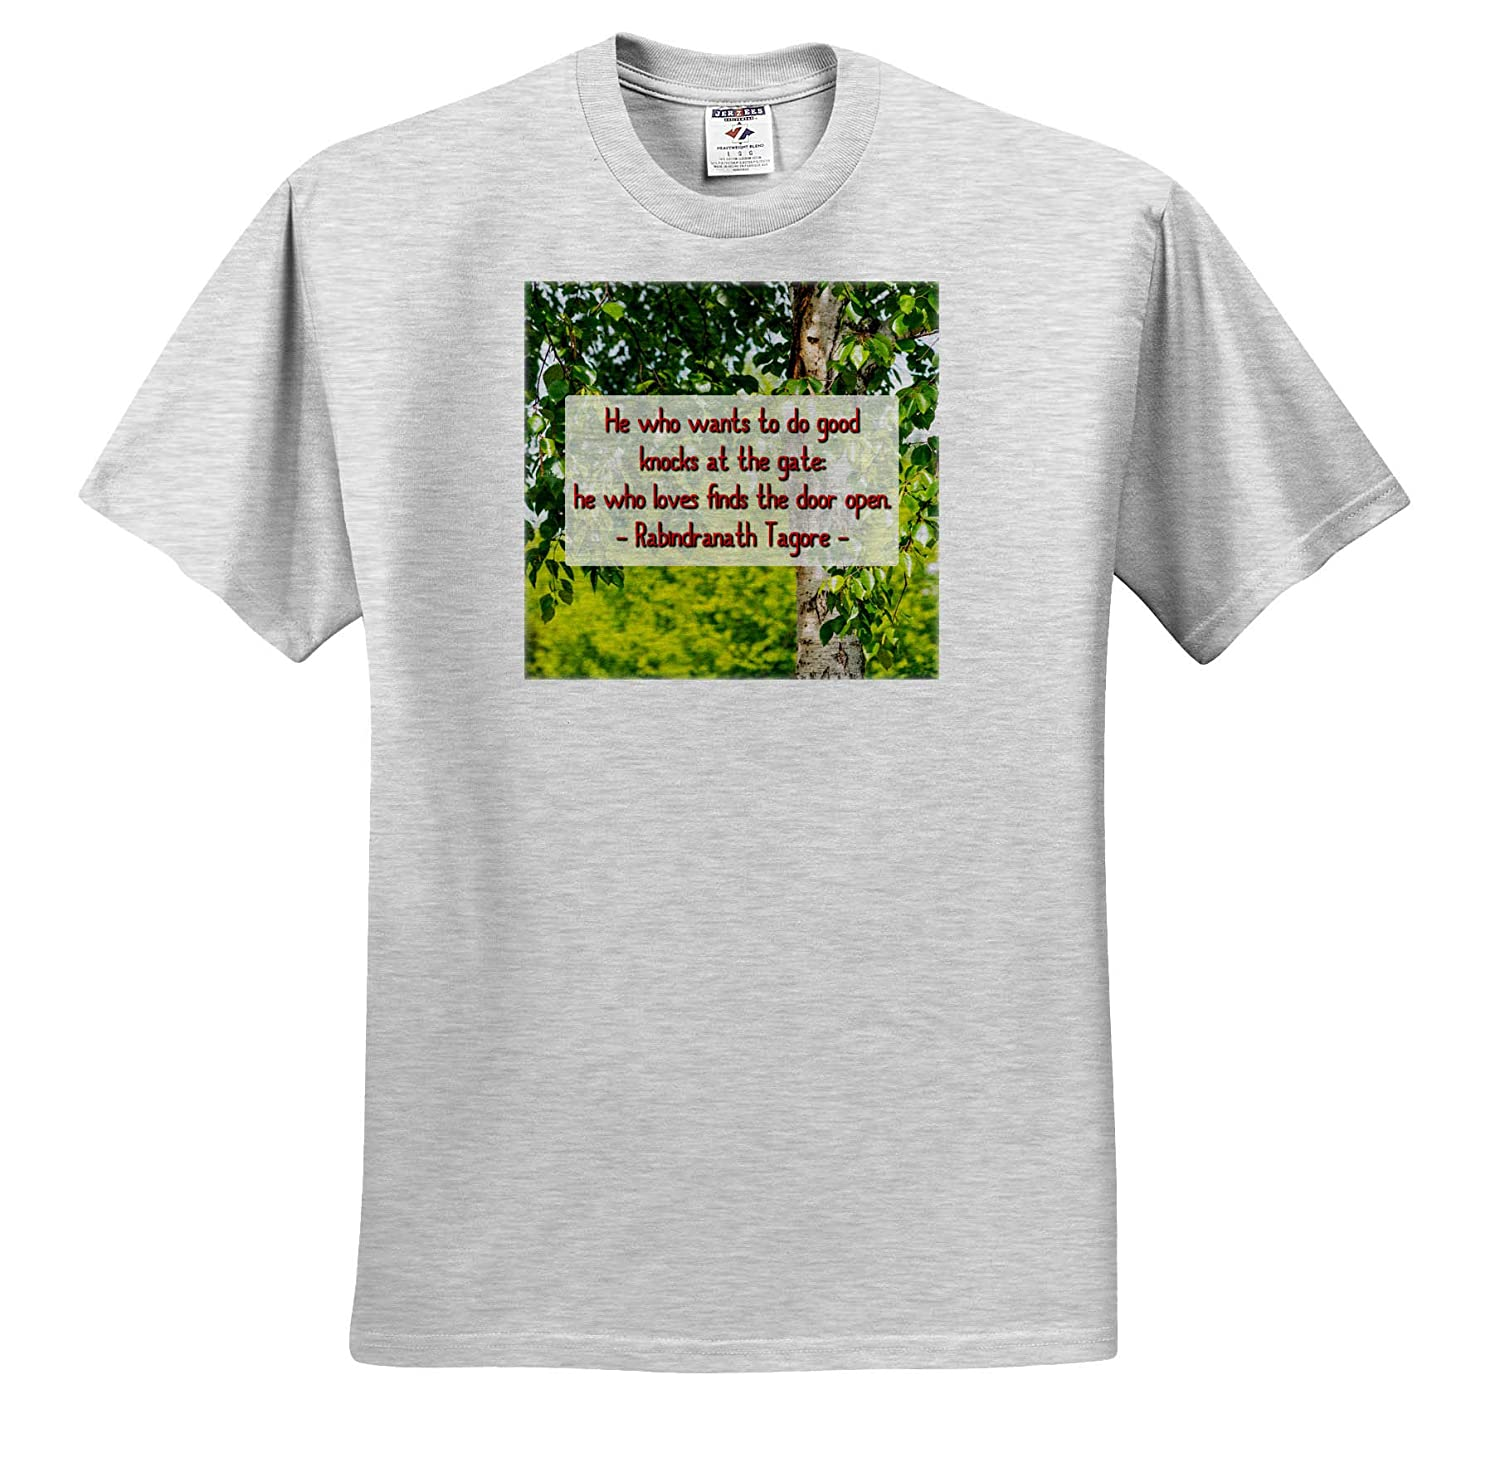 Quotes Love T-Shirts Green Birch Tree Rabindranath Tagore Quote He who Wants to do Good 3dRose Alexis Design